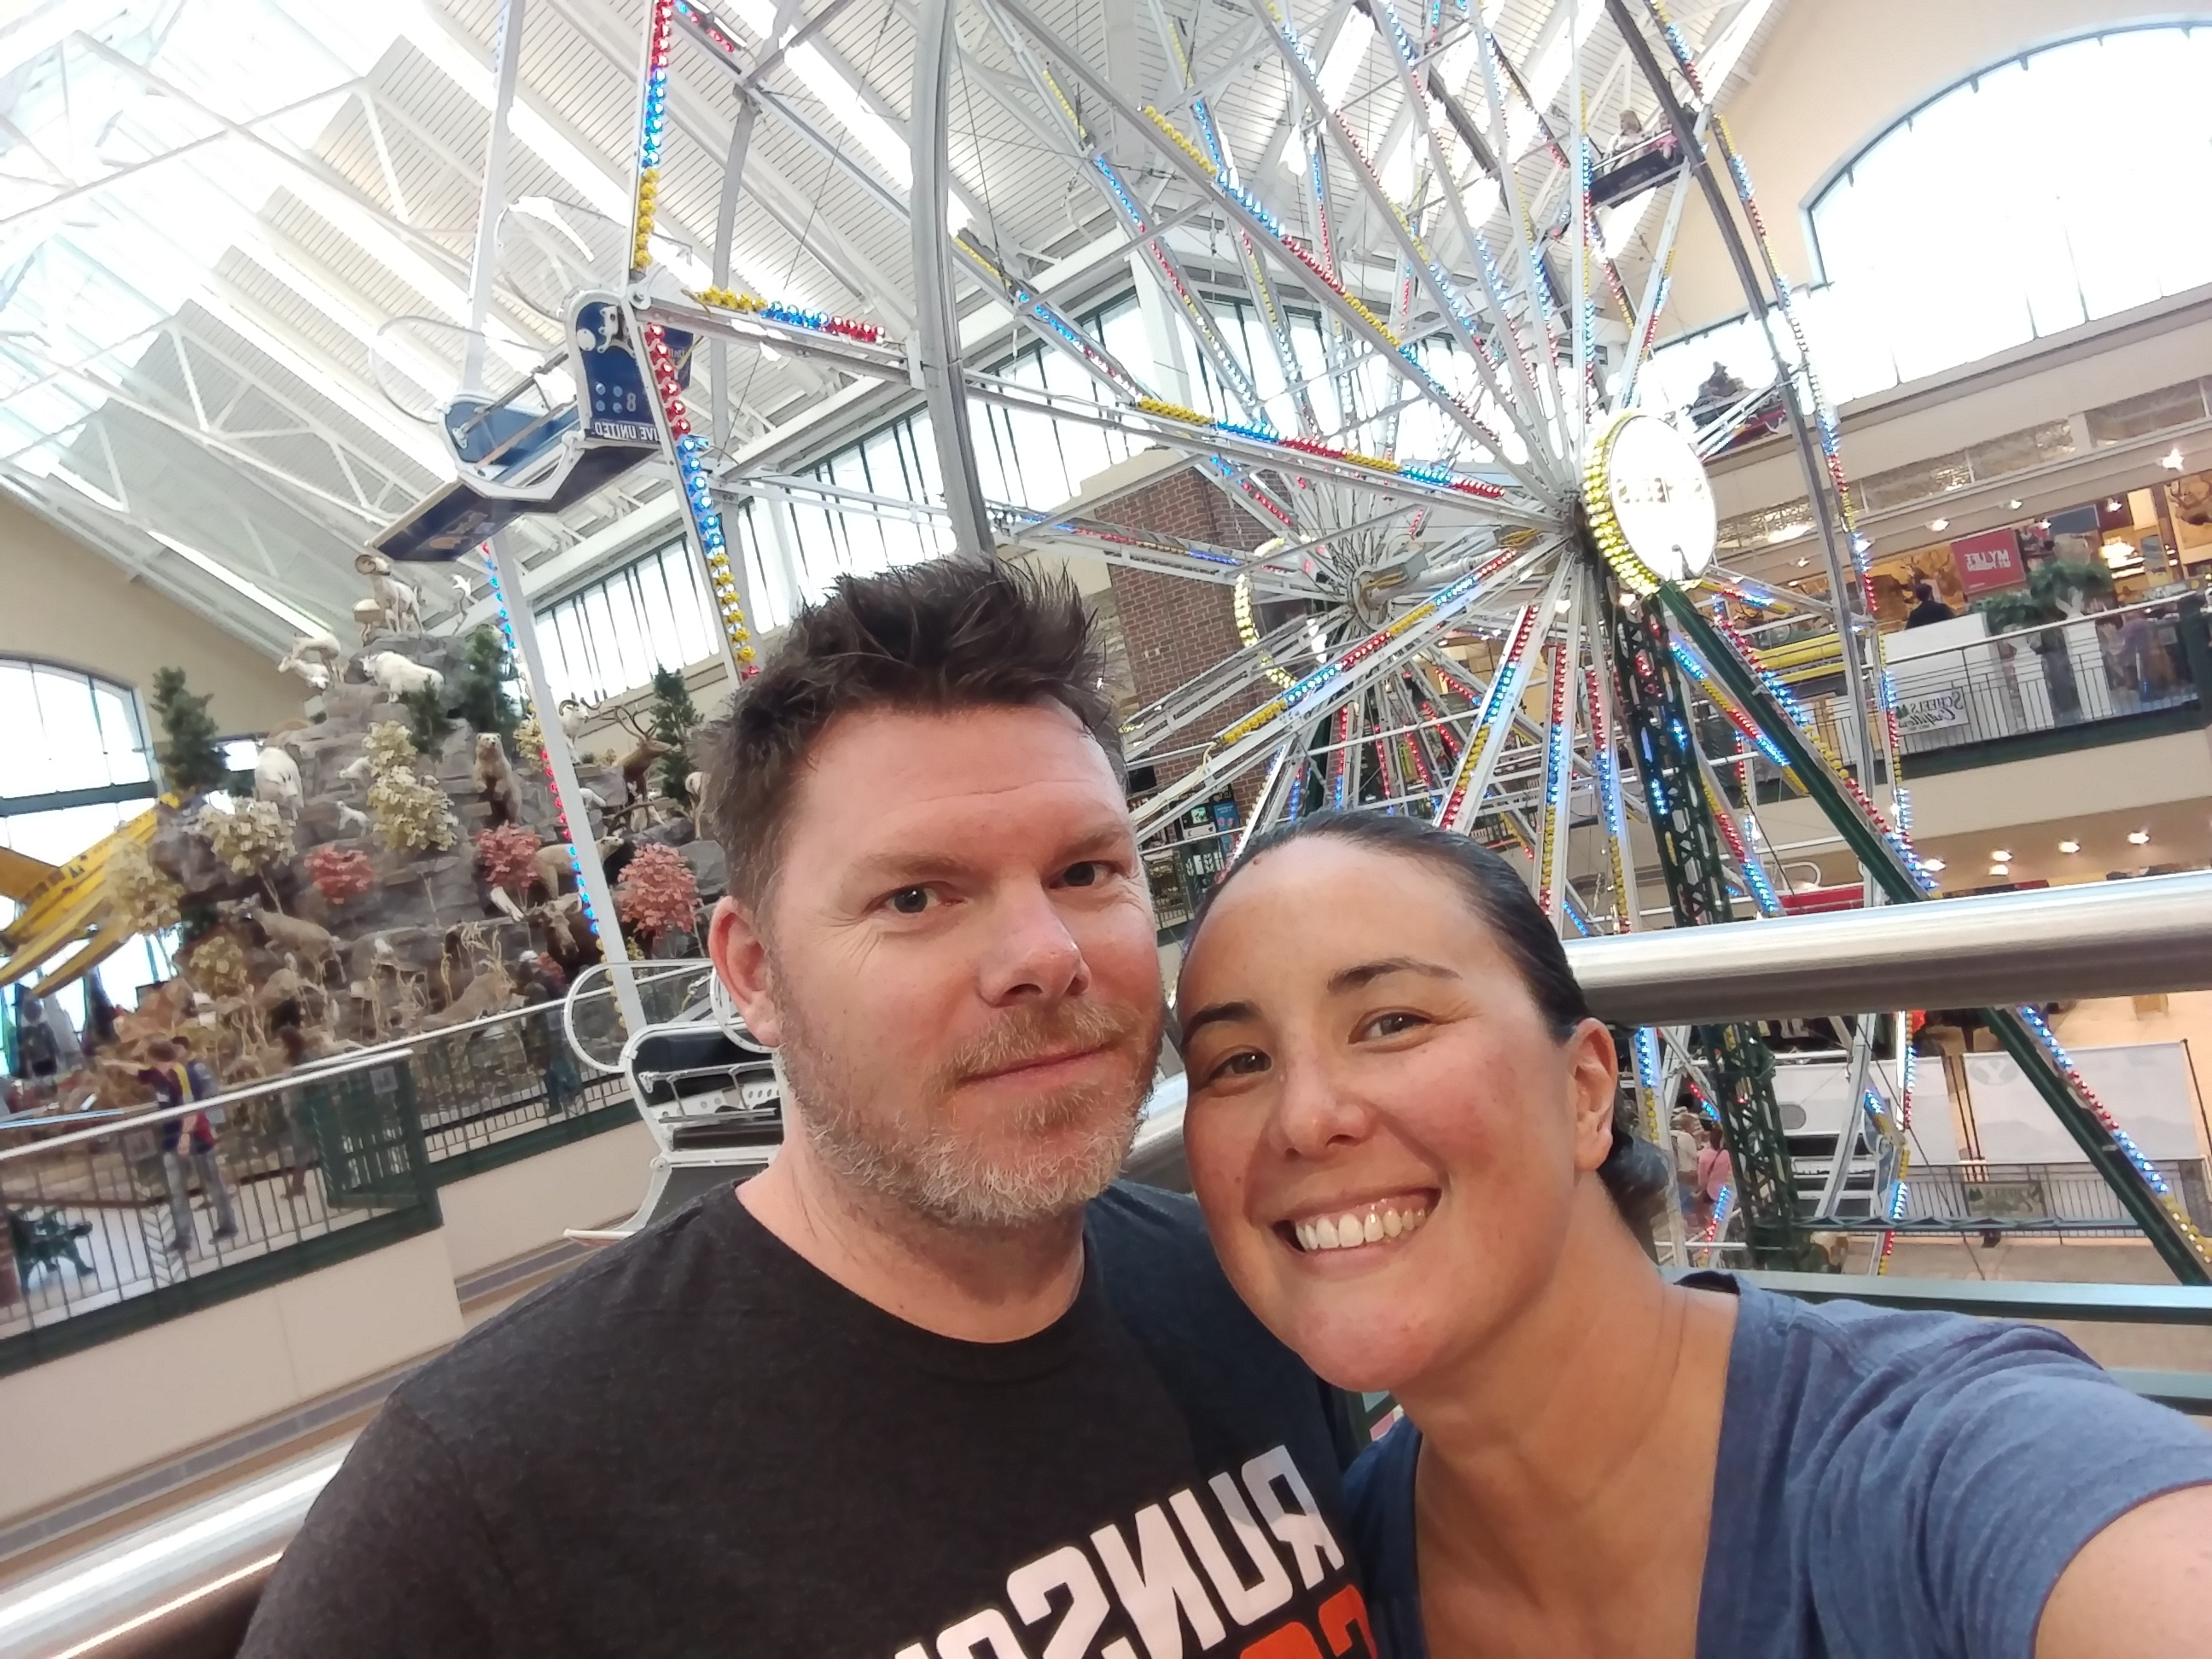 Yes, that's a Ferris wheel inside a sporting goods store.